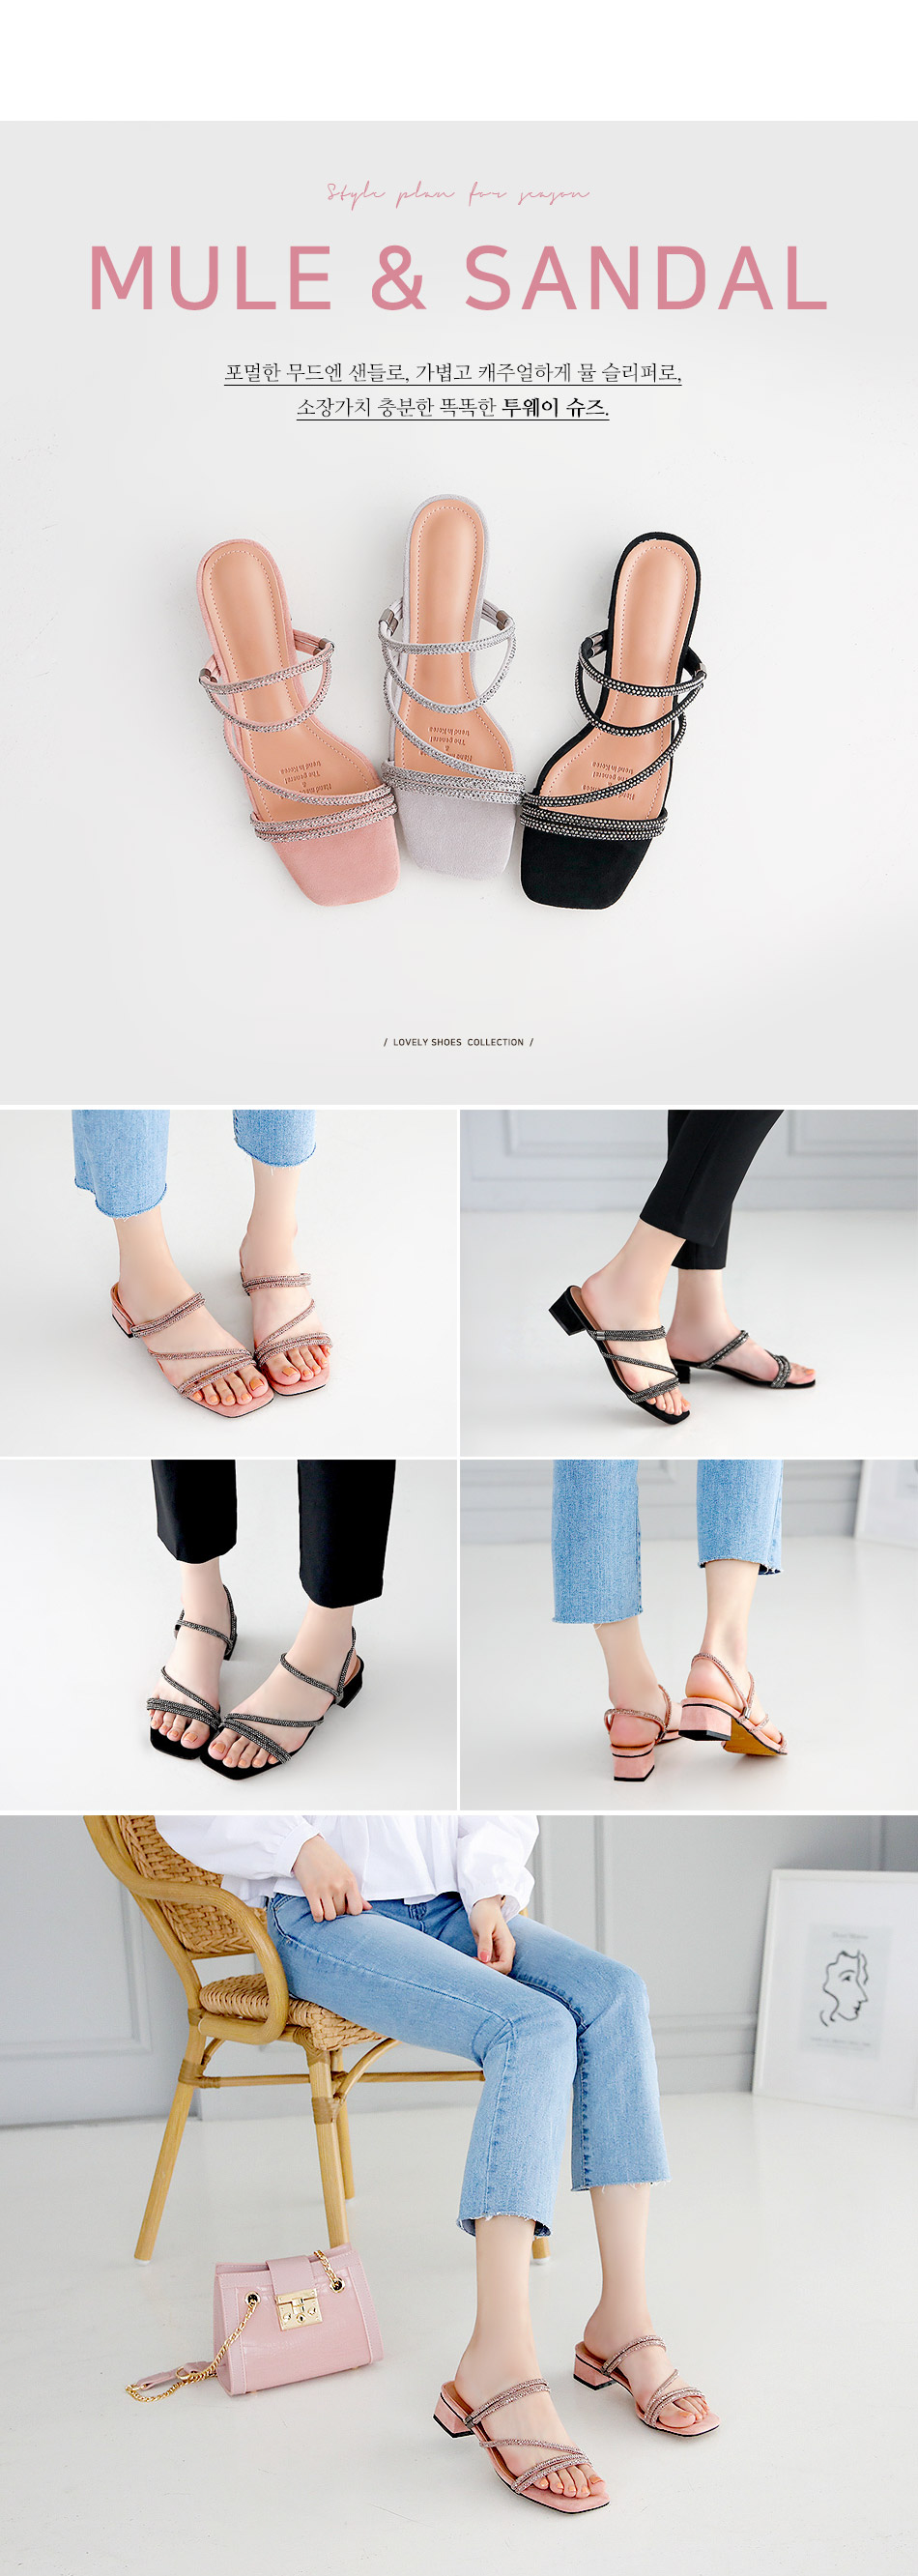 Kyubinsu Two Way Mule & Sandals 3.5cm